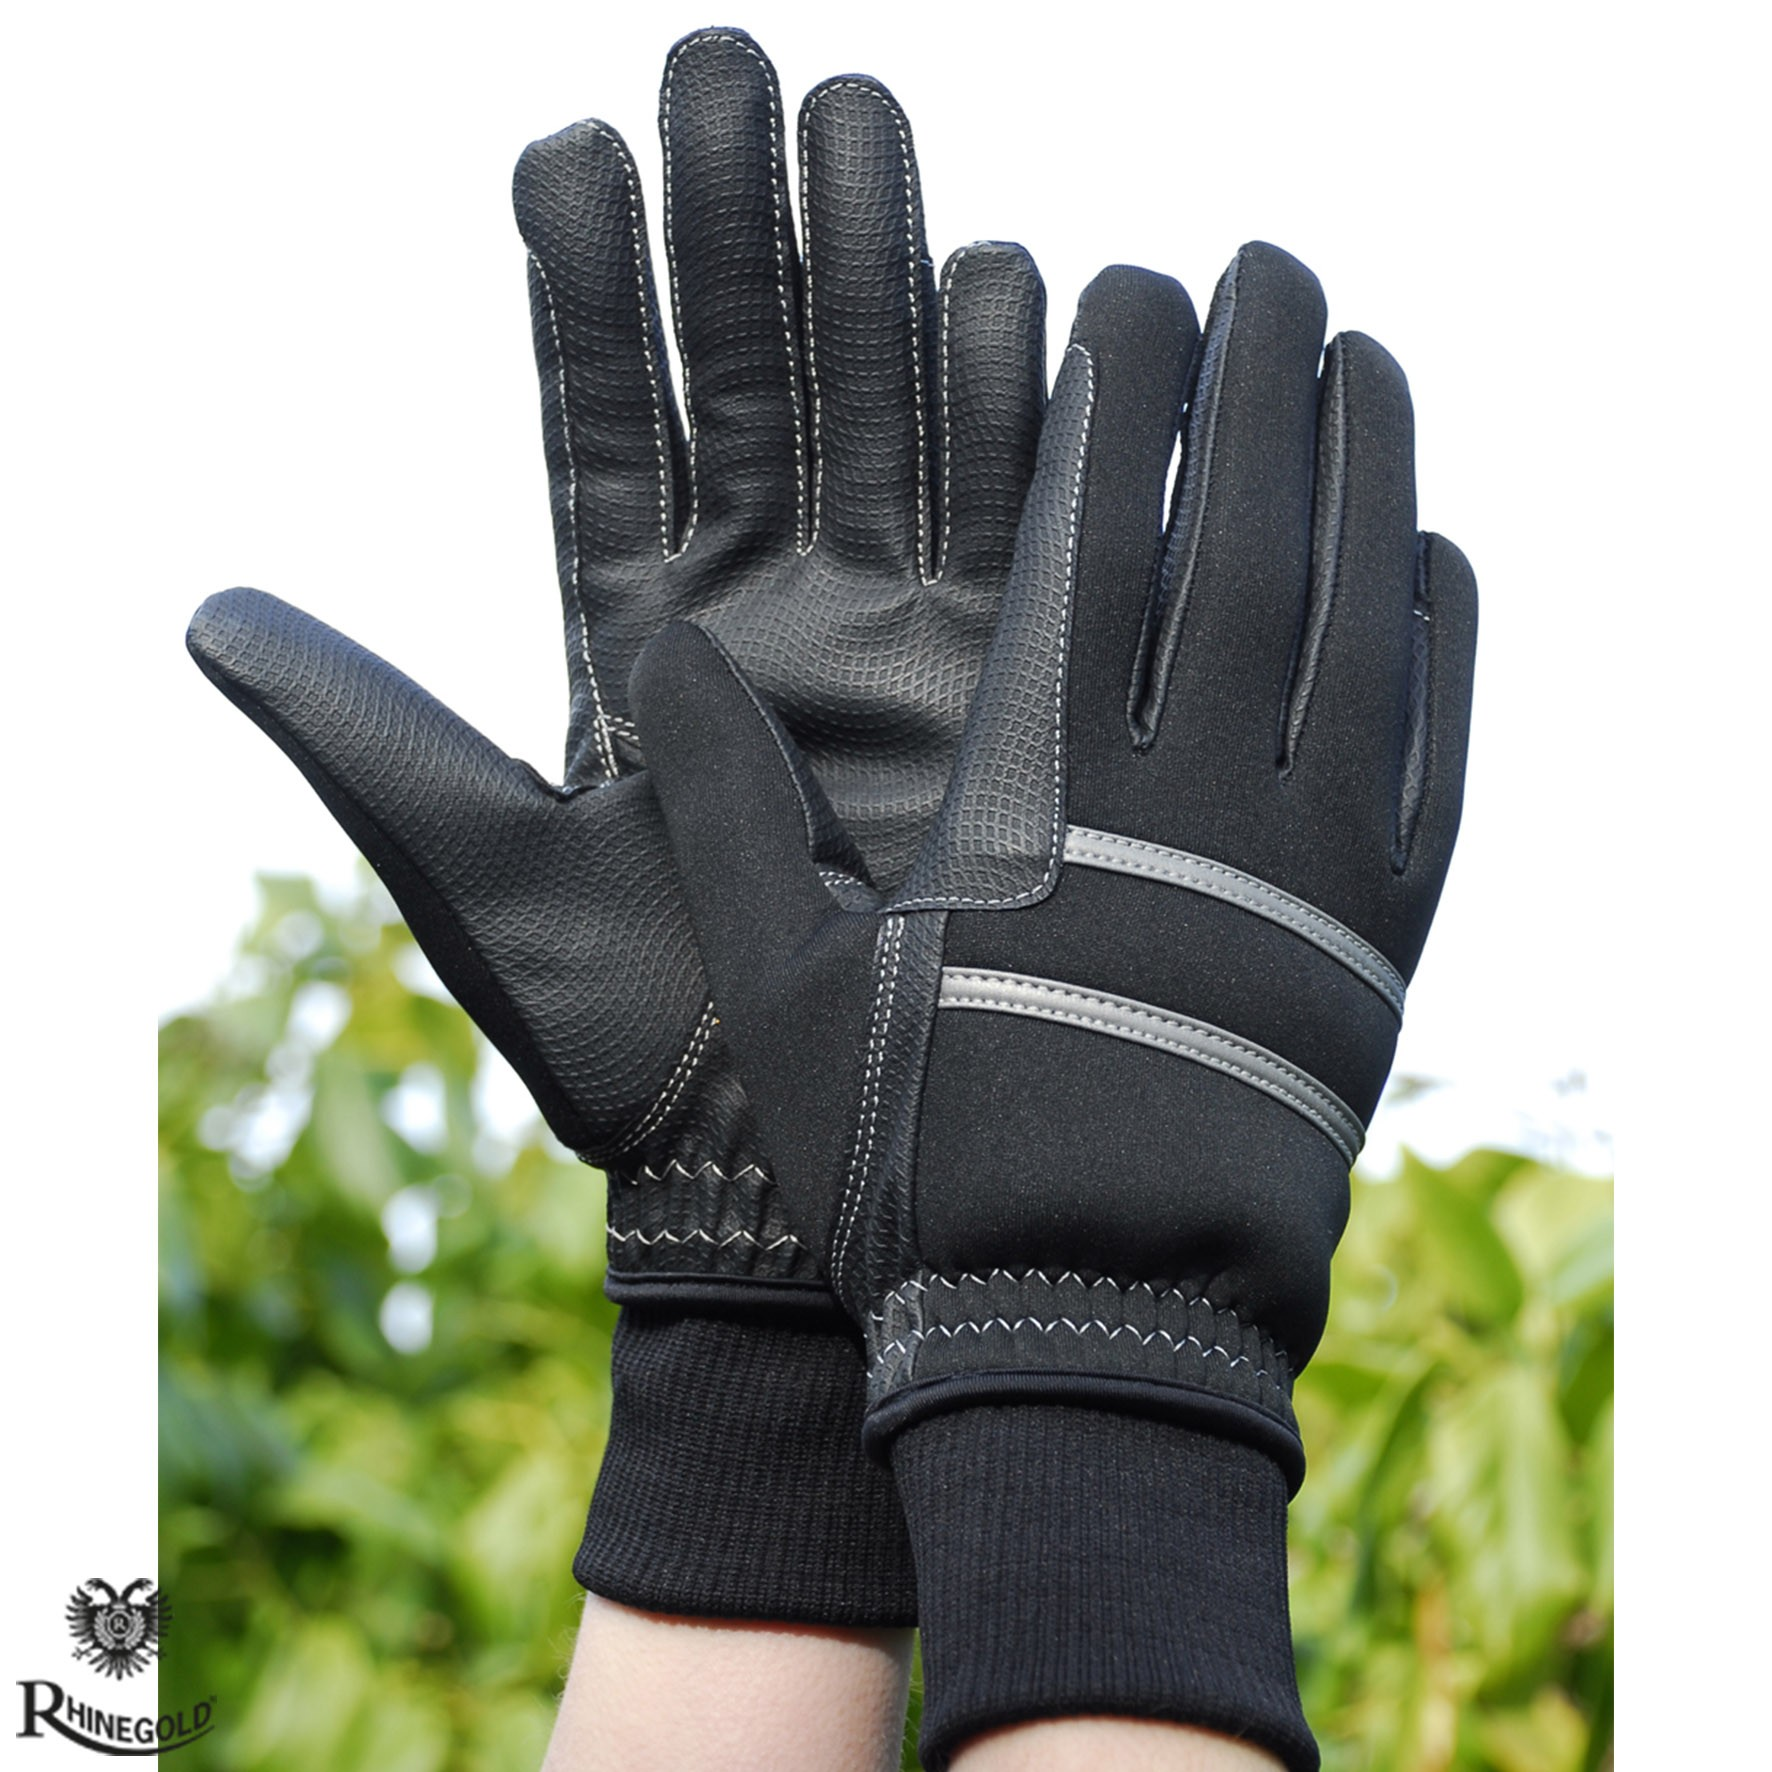 Winter Riding Gloves by Rhinegold